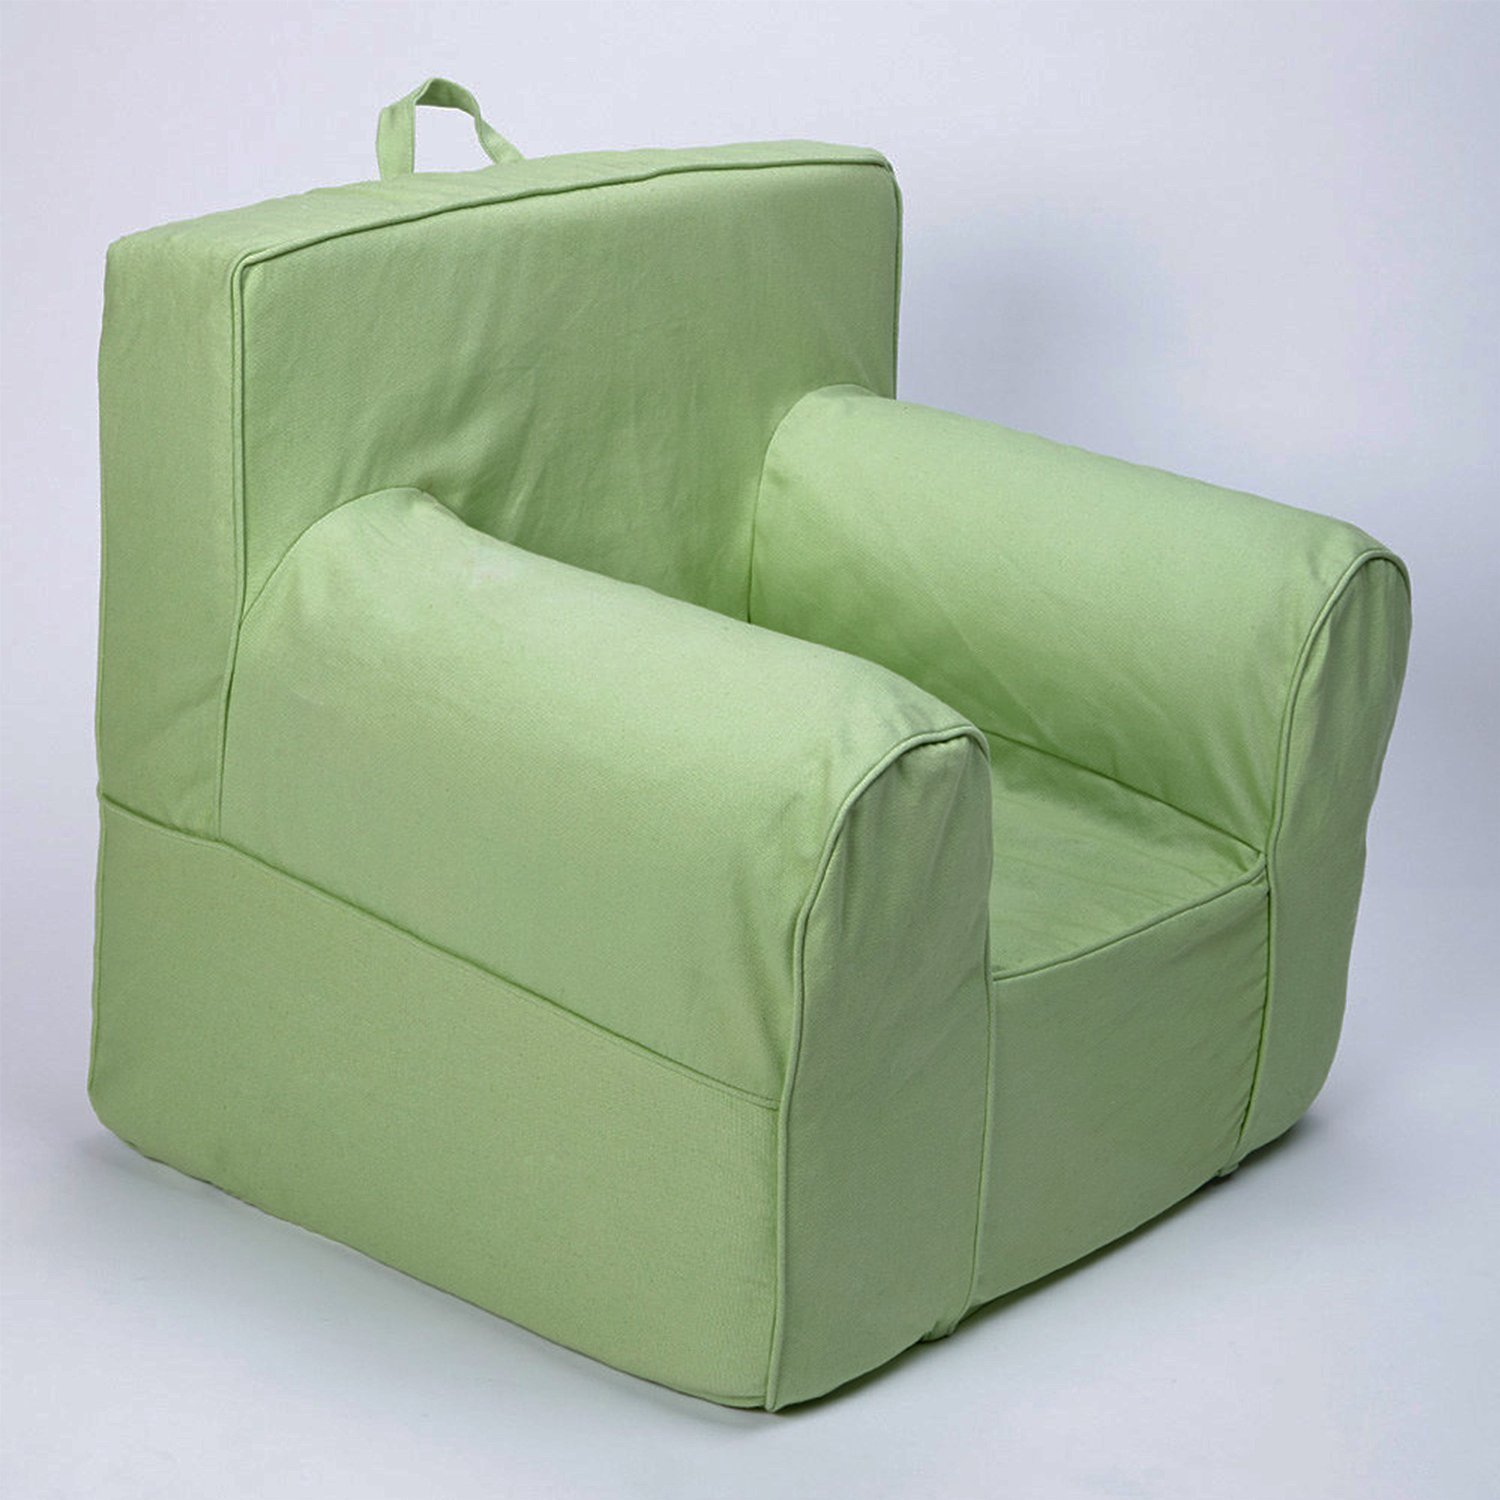 Get Quotations · CUB CHAIRS Oversize Green Chair Cover For Foam Childrenu0027s  Chair